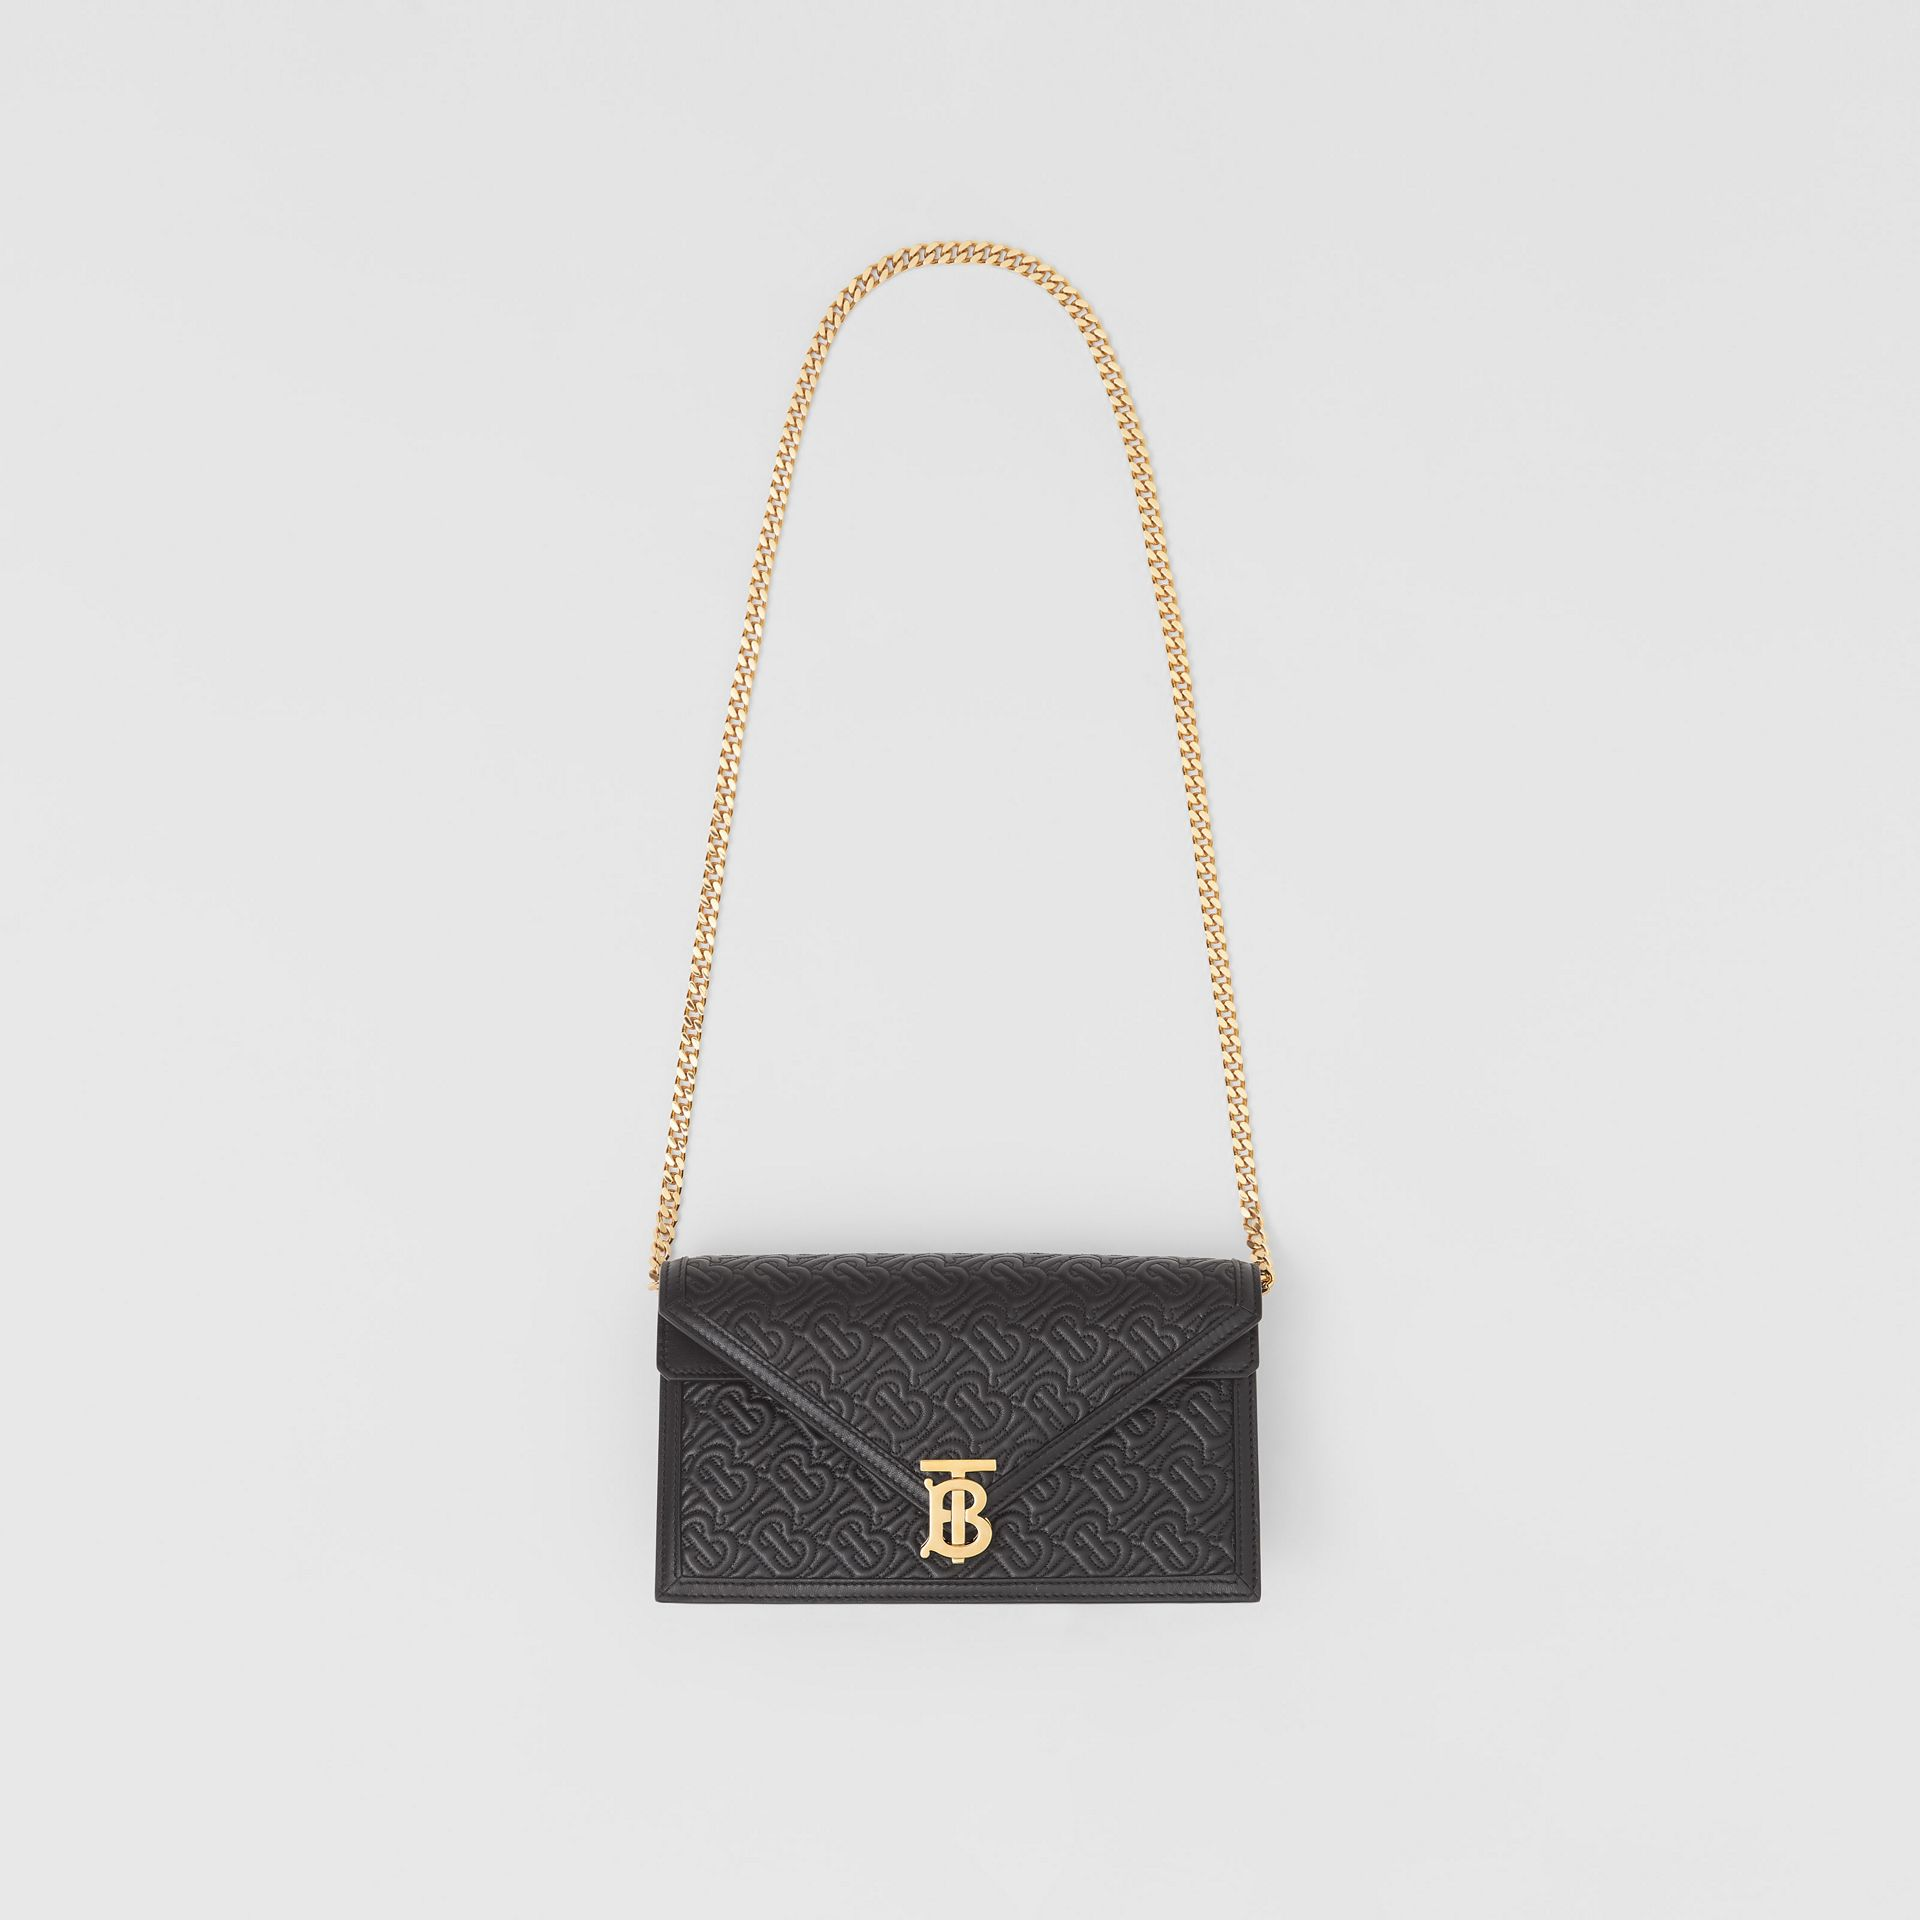 Small Quilted Monogram TB Envelope Clutch in Black - Women | Burberry - gallery image 3